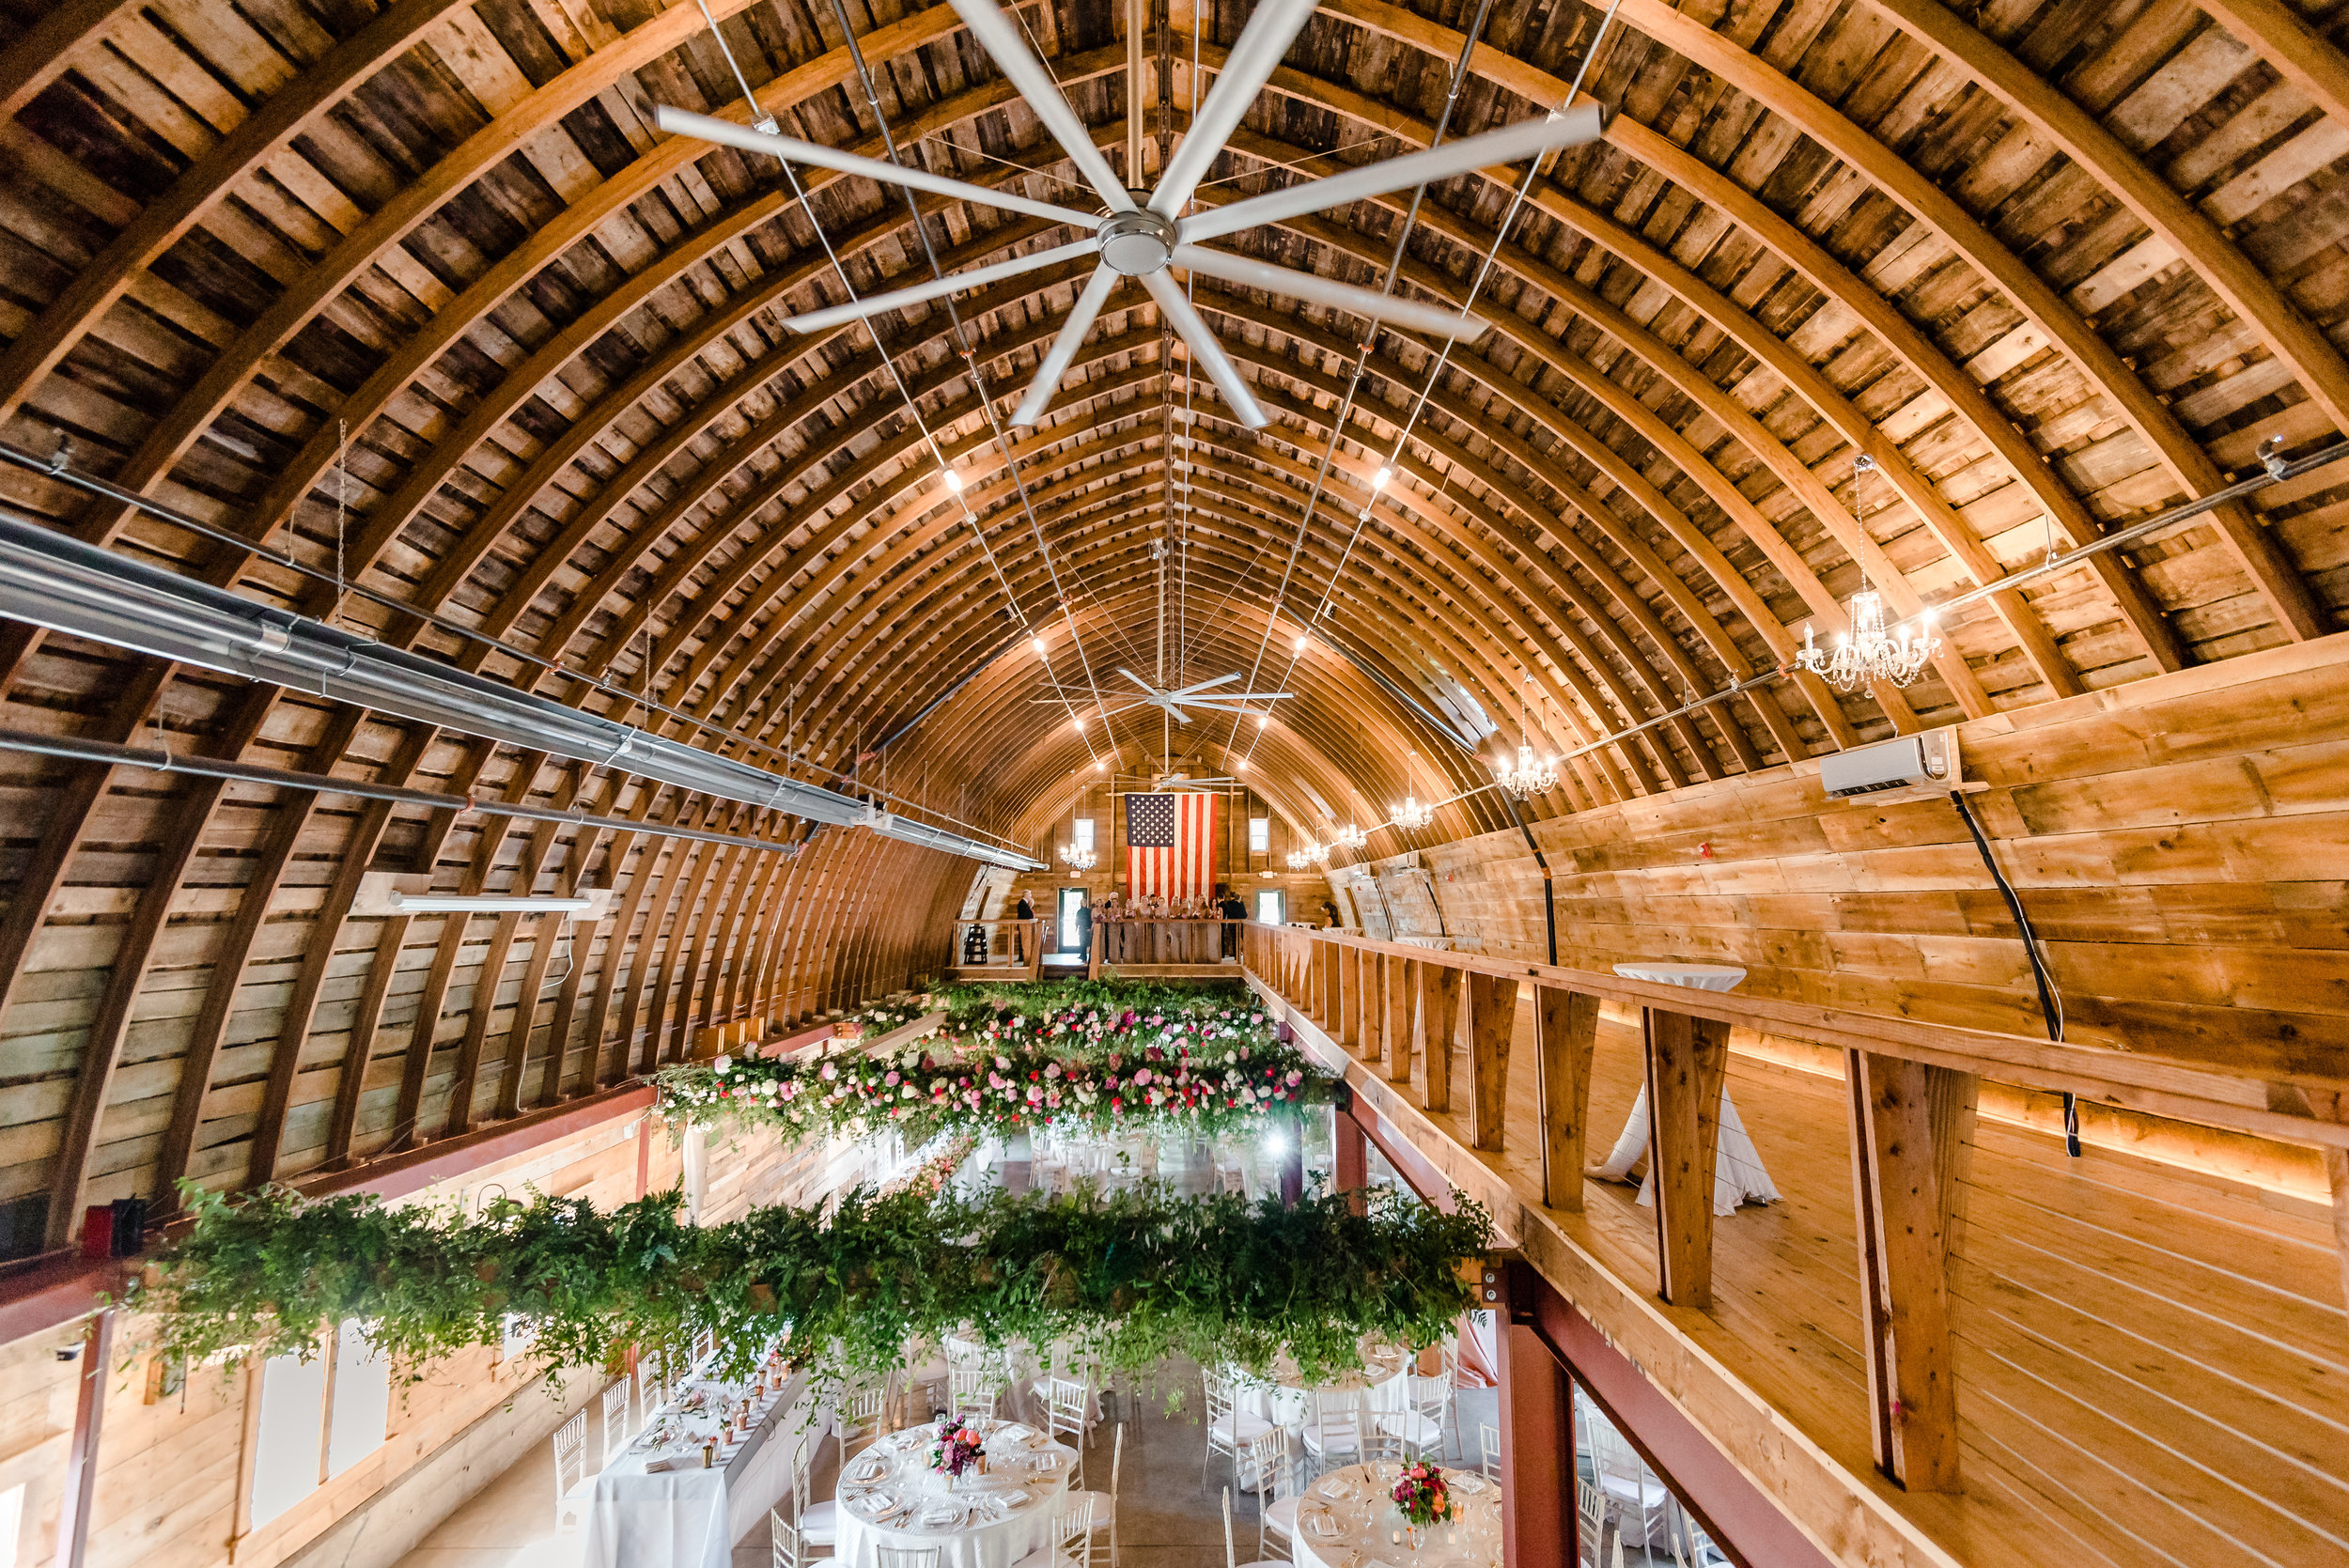 Barn Wedding Venue MN - Historic John P. Furber Farm Wedding - Barn Interior - Best Wedding Photographers in MN